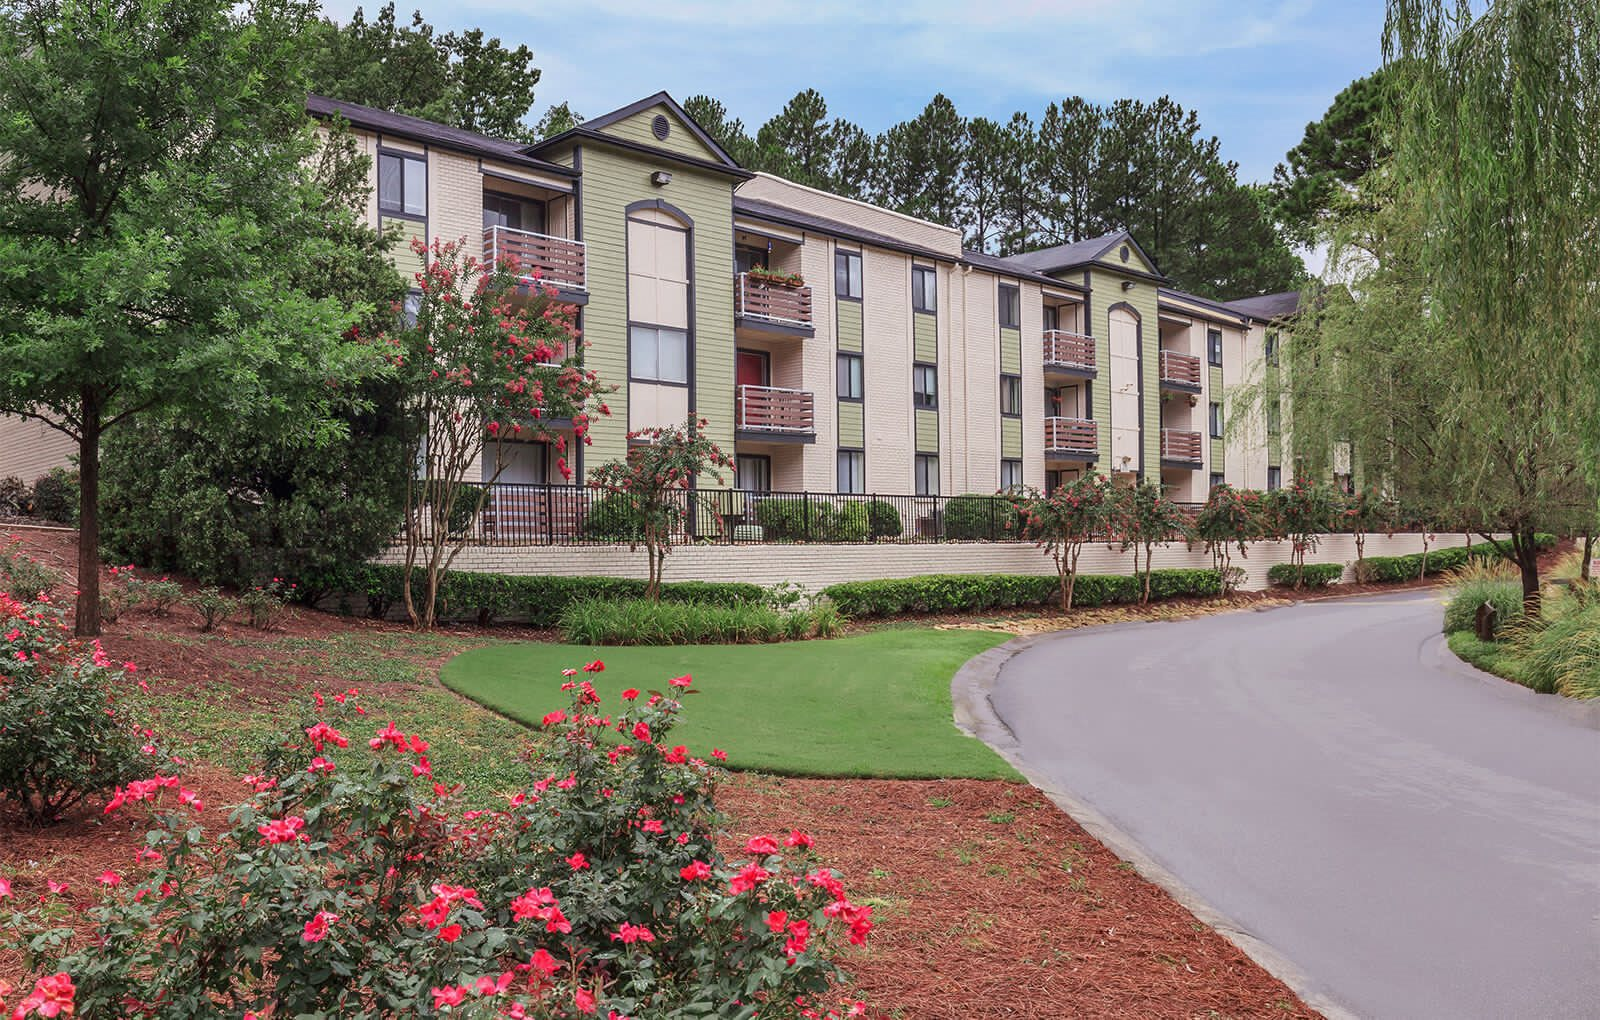 Apartment building exterior and landscape at Park on Windy Hill in Marietta, GA.